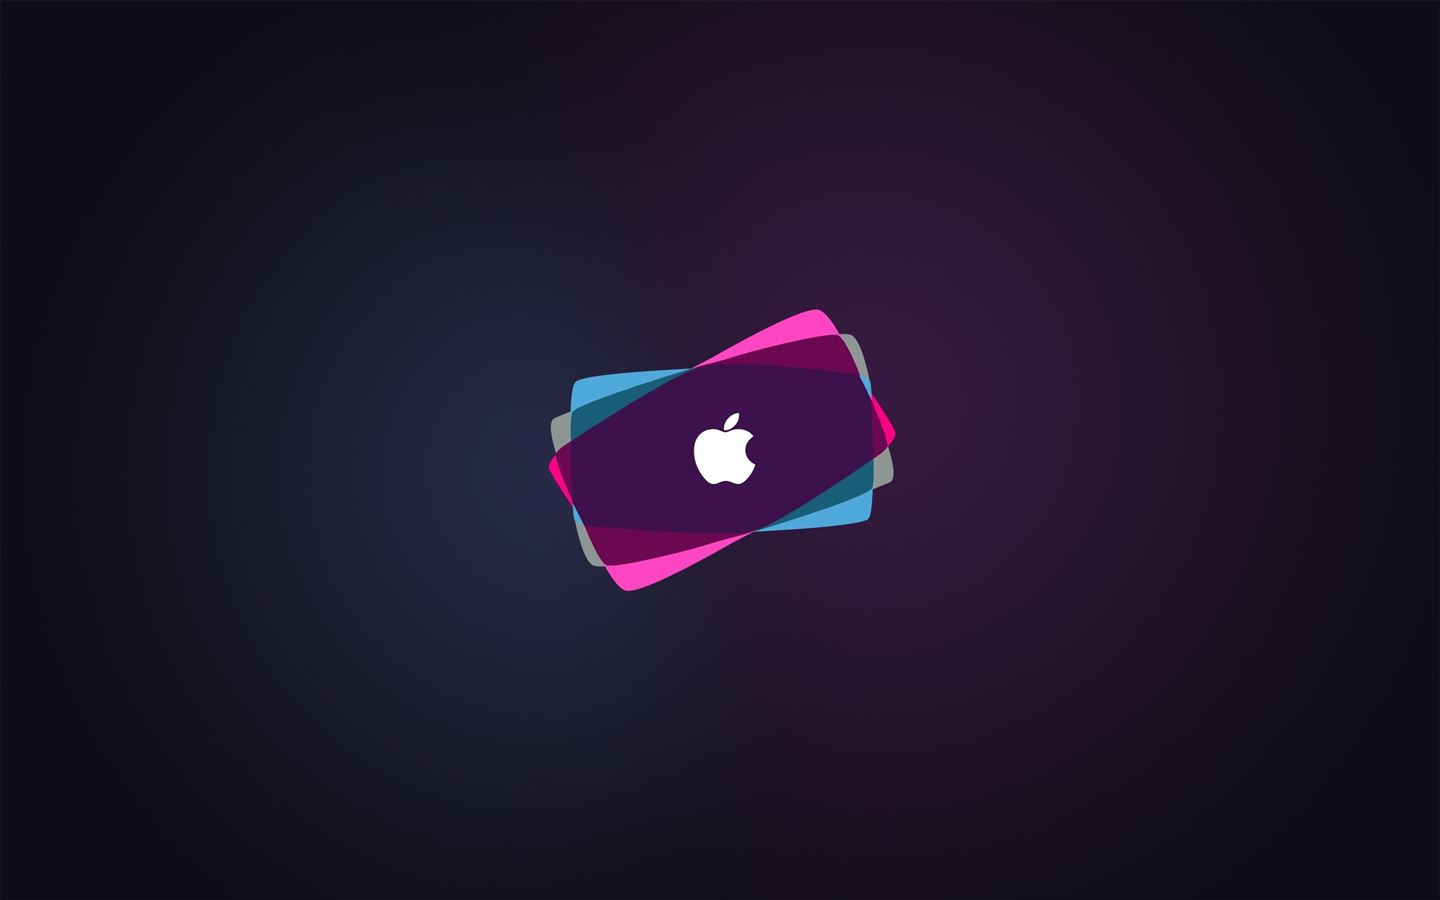 apple tv mac wallpaper download free mac wallpapers download